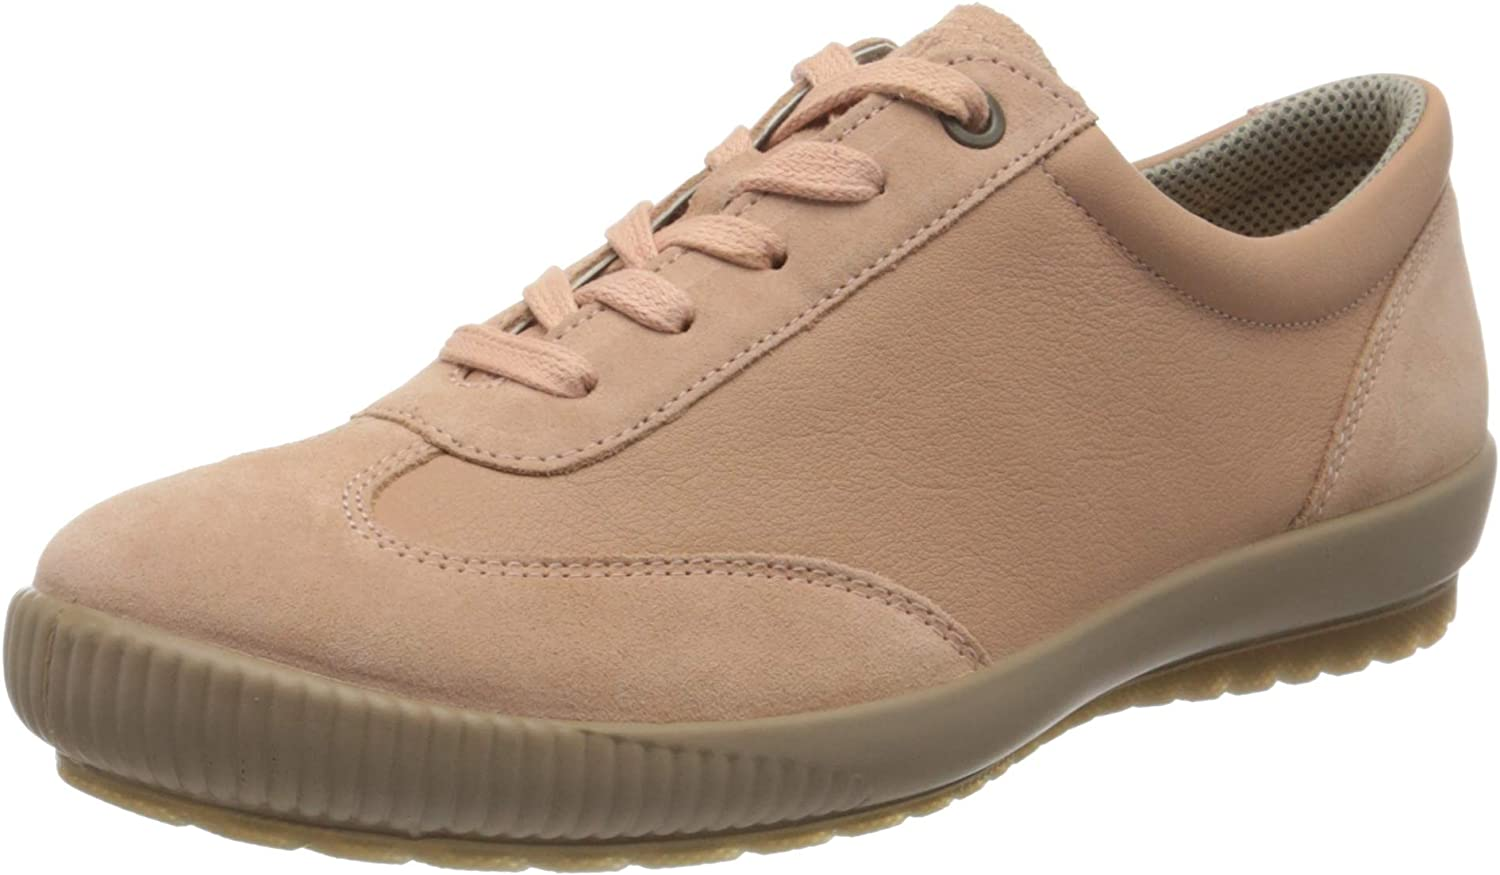 Legero Women's Sneakers Directly managed Reservation store Low-Top